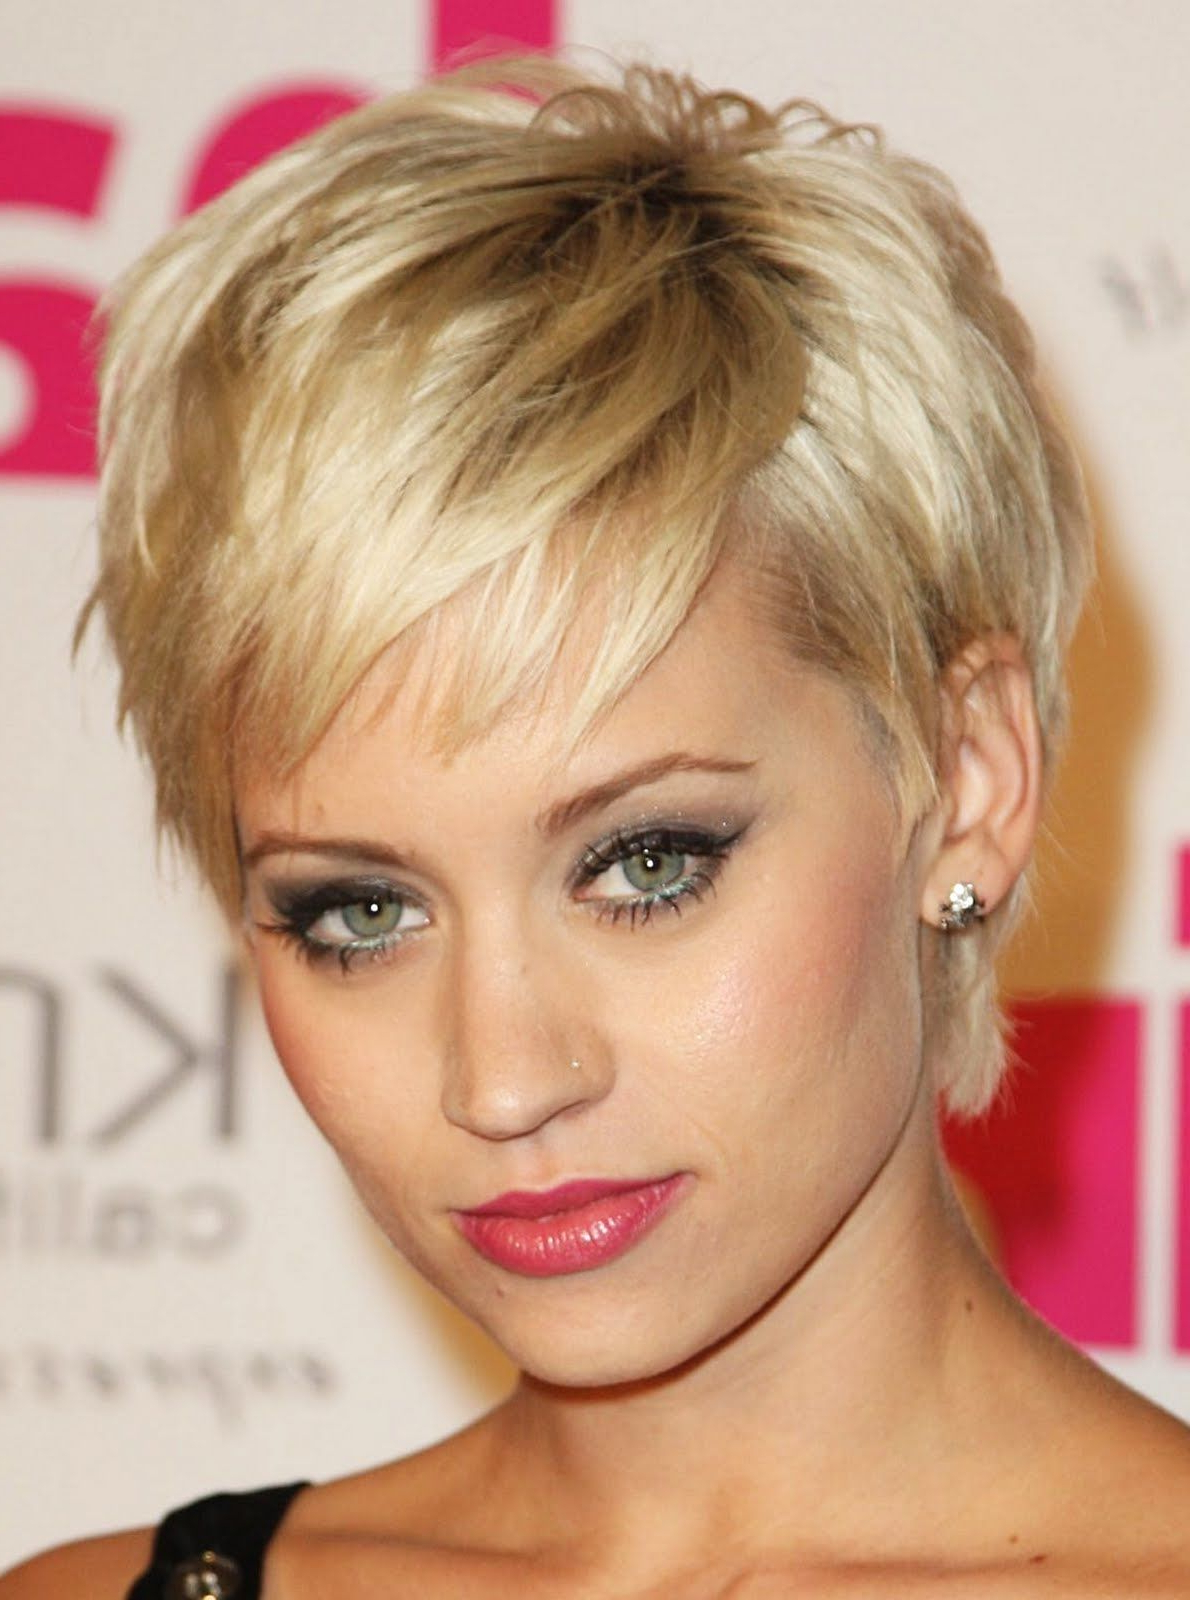 Short Hairstyles For Oval Faces | Hair Cut | Pinterest | Short Hair In Short Haircuts For Oblong Face (View 2 of 25)